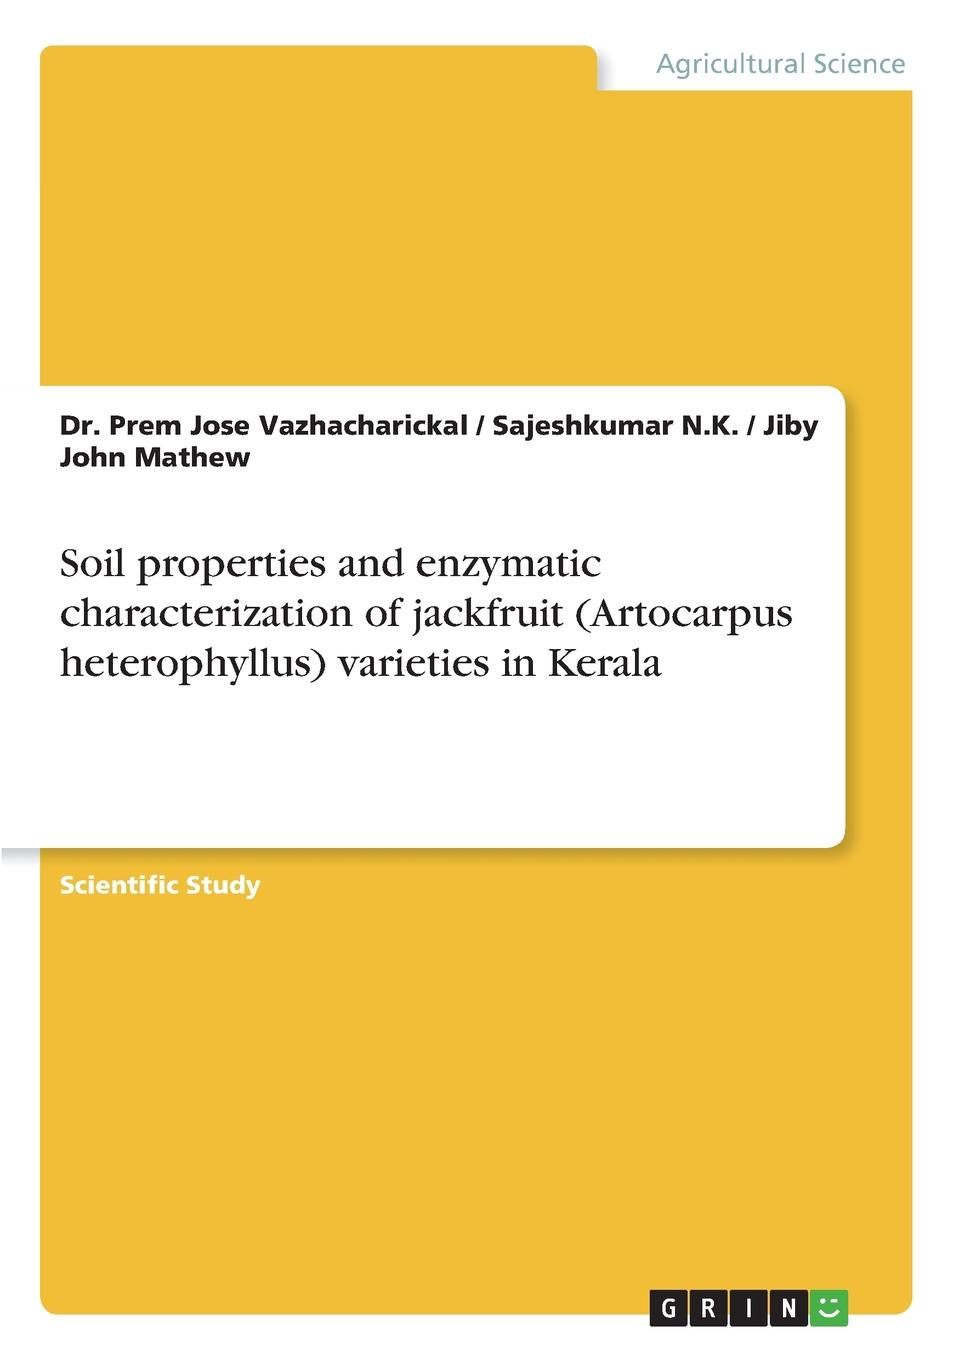 Jiby John Mathew, Sajeshkumar N.K., Dr. Prem Jose Vazhacharickal Soil properties and enzymatic characterization of jackfruit (Artocarpus heterophyllus) varieties in Kerala malcolm kemp extreme events robust portfolio construction in the presence of fat tails isbn 9780470976791